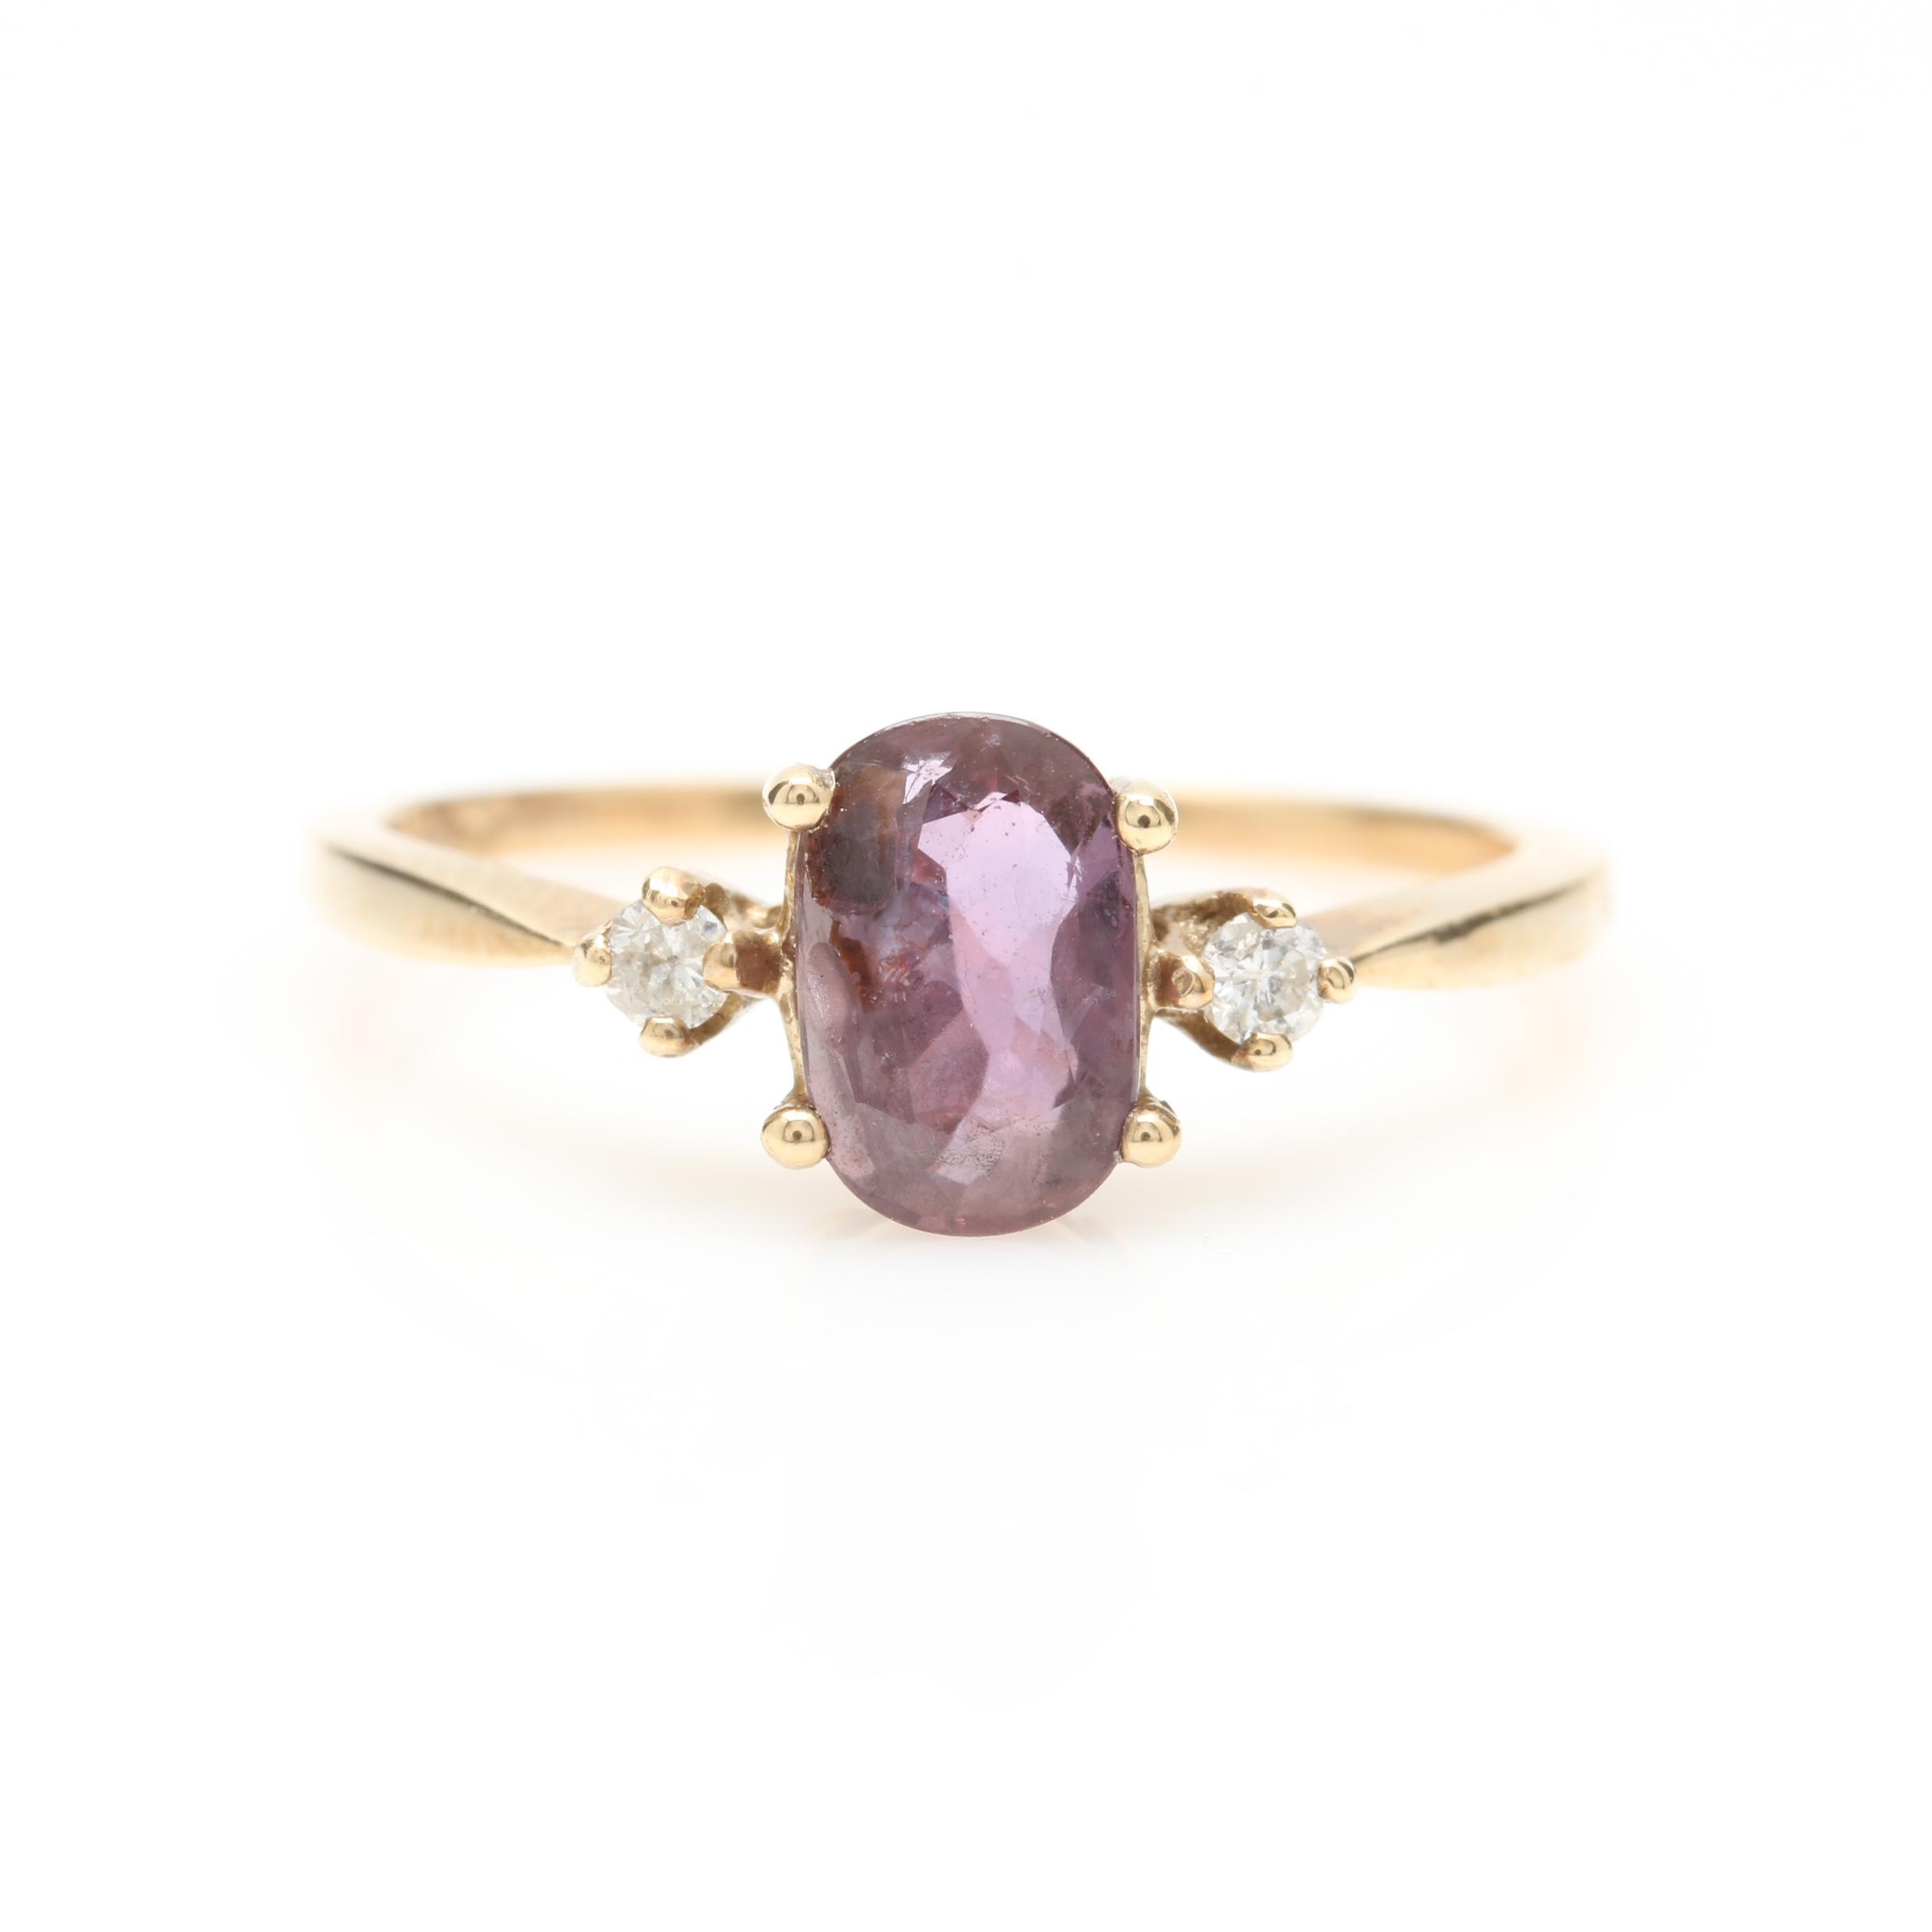 10K Yellow Gold Color Change Sapphire and Diamond Ring